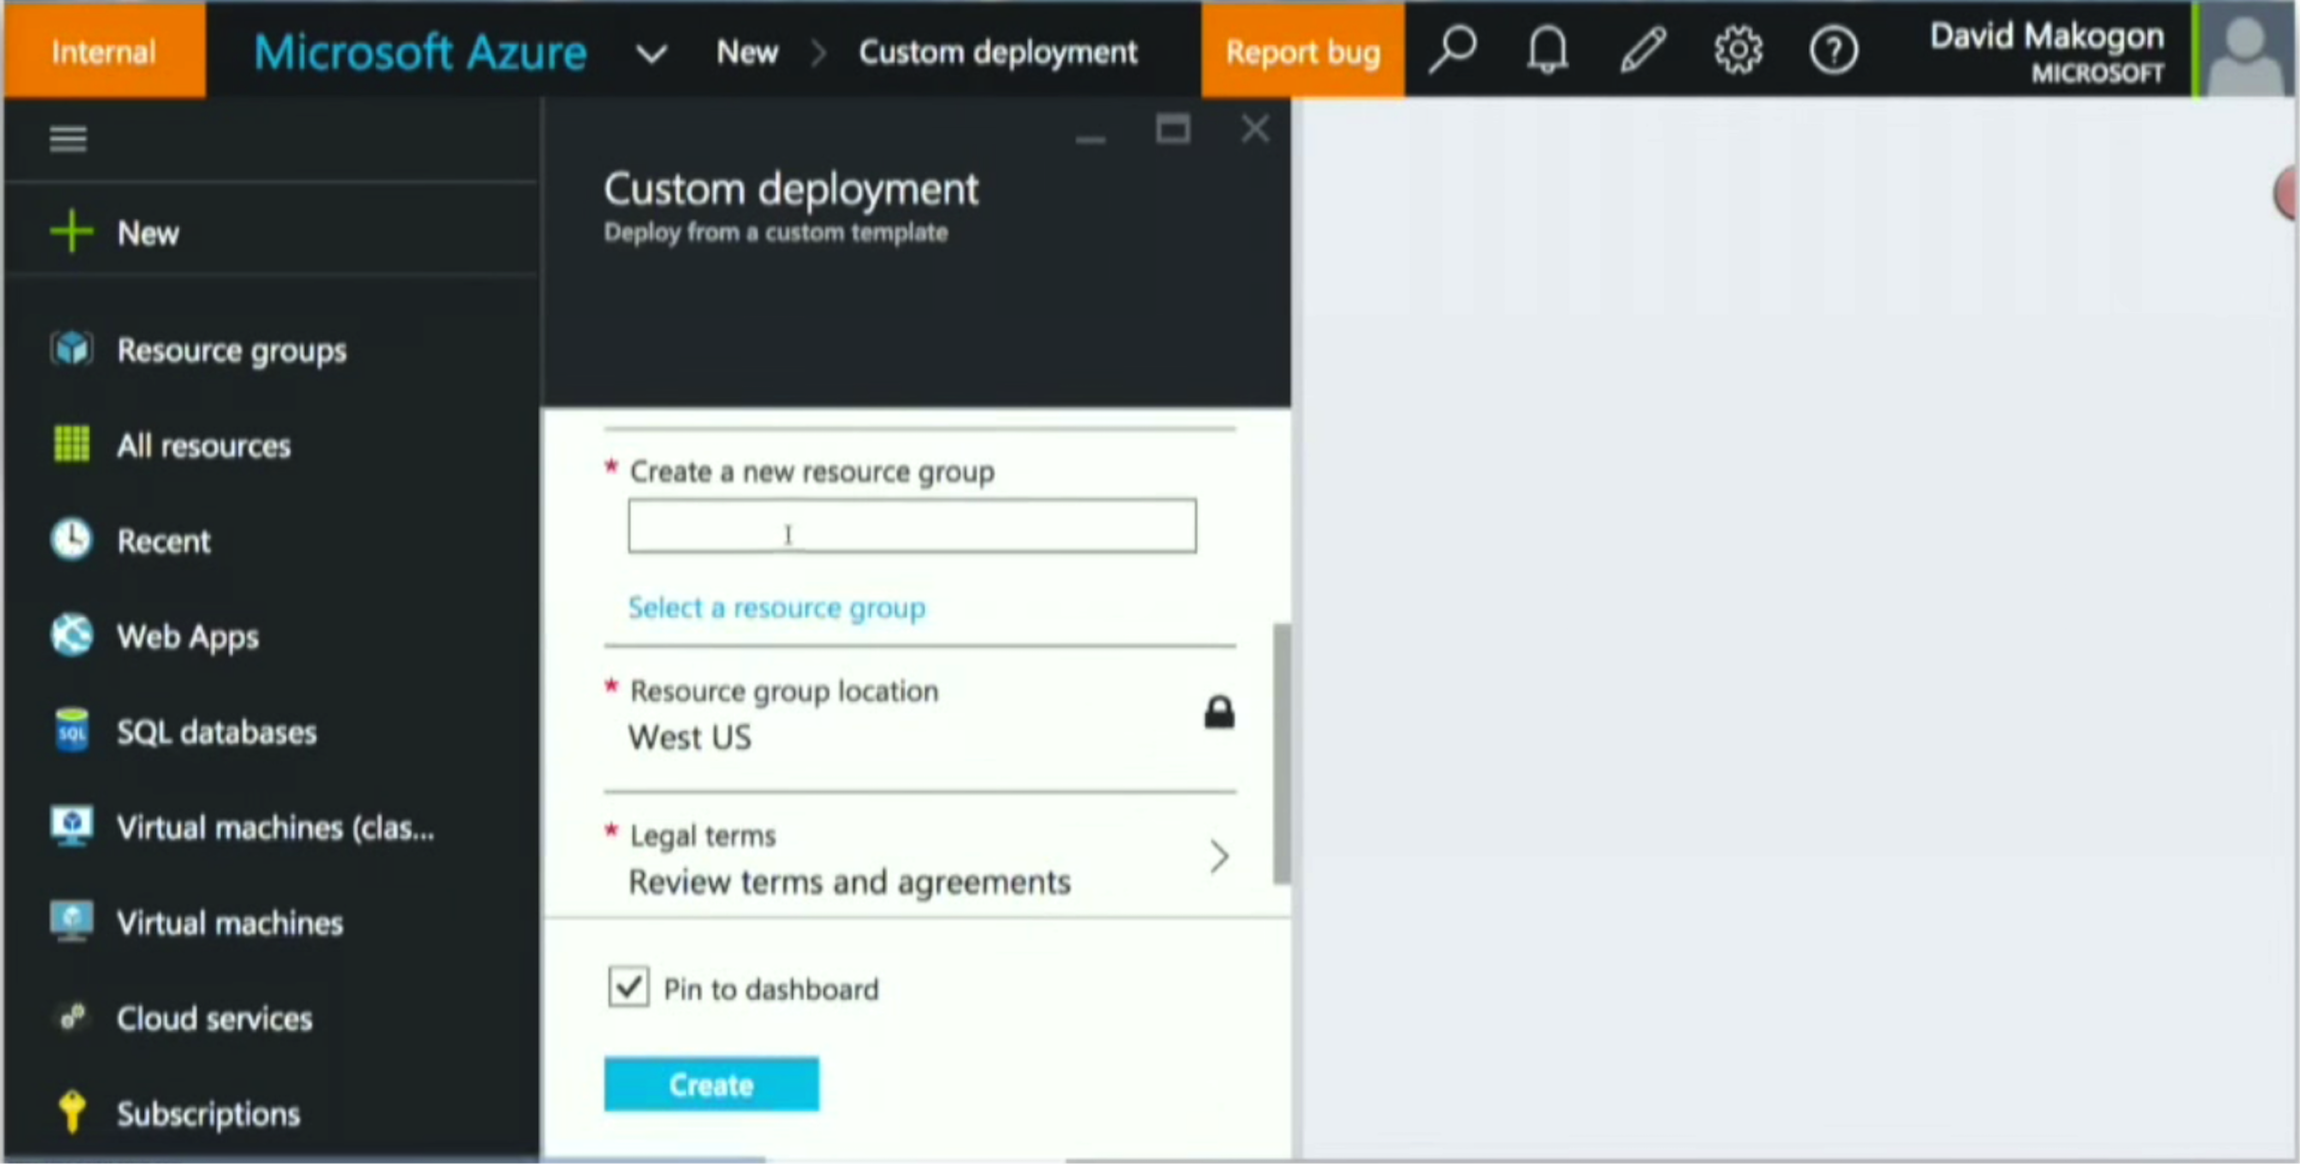 Defining a Resource Group in Microsoft Azure